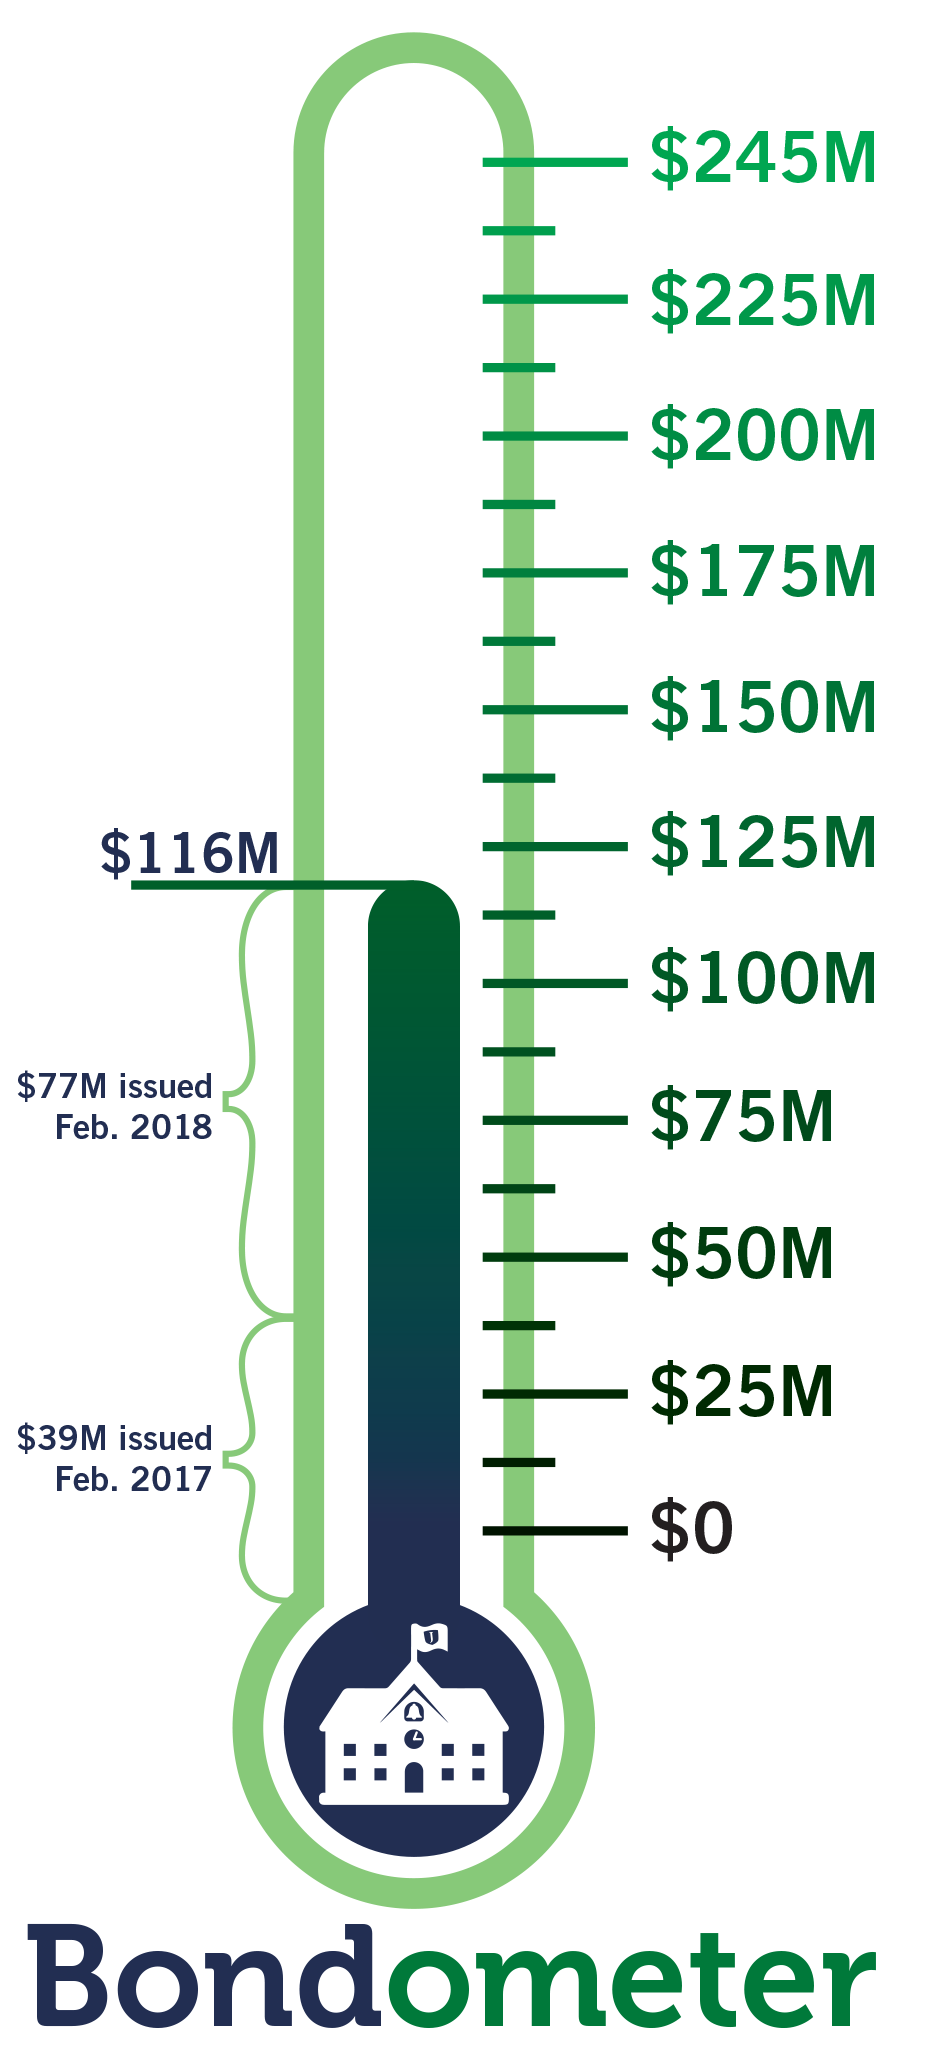 The Bondometer indicates $116 million in bonds have been sold as of Feb. 2018